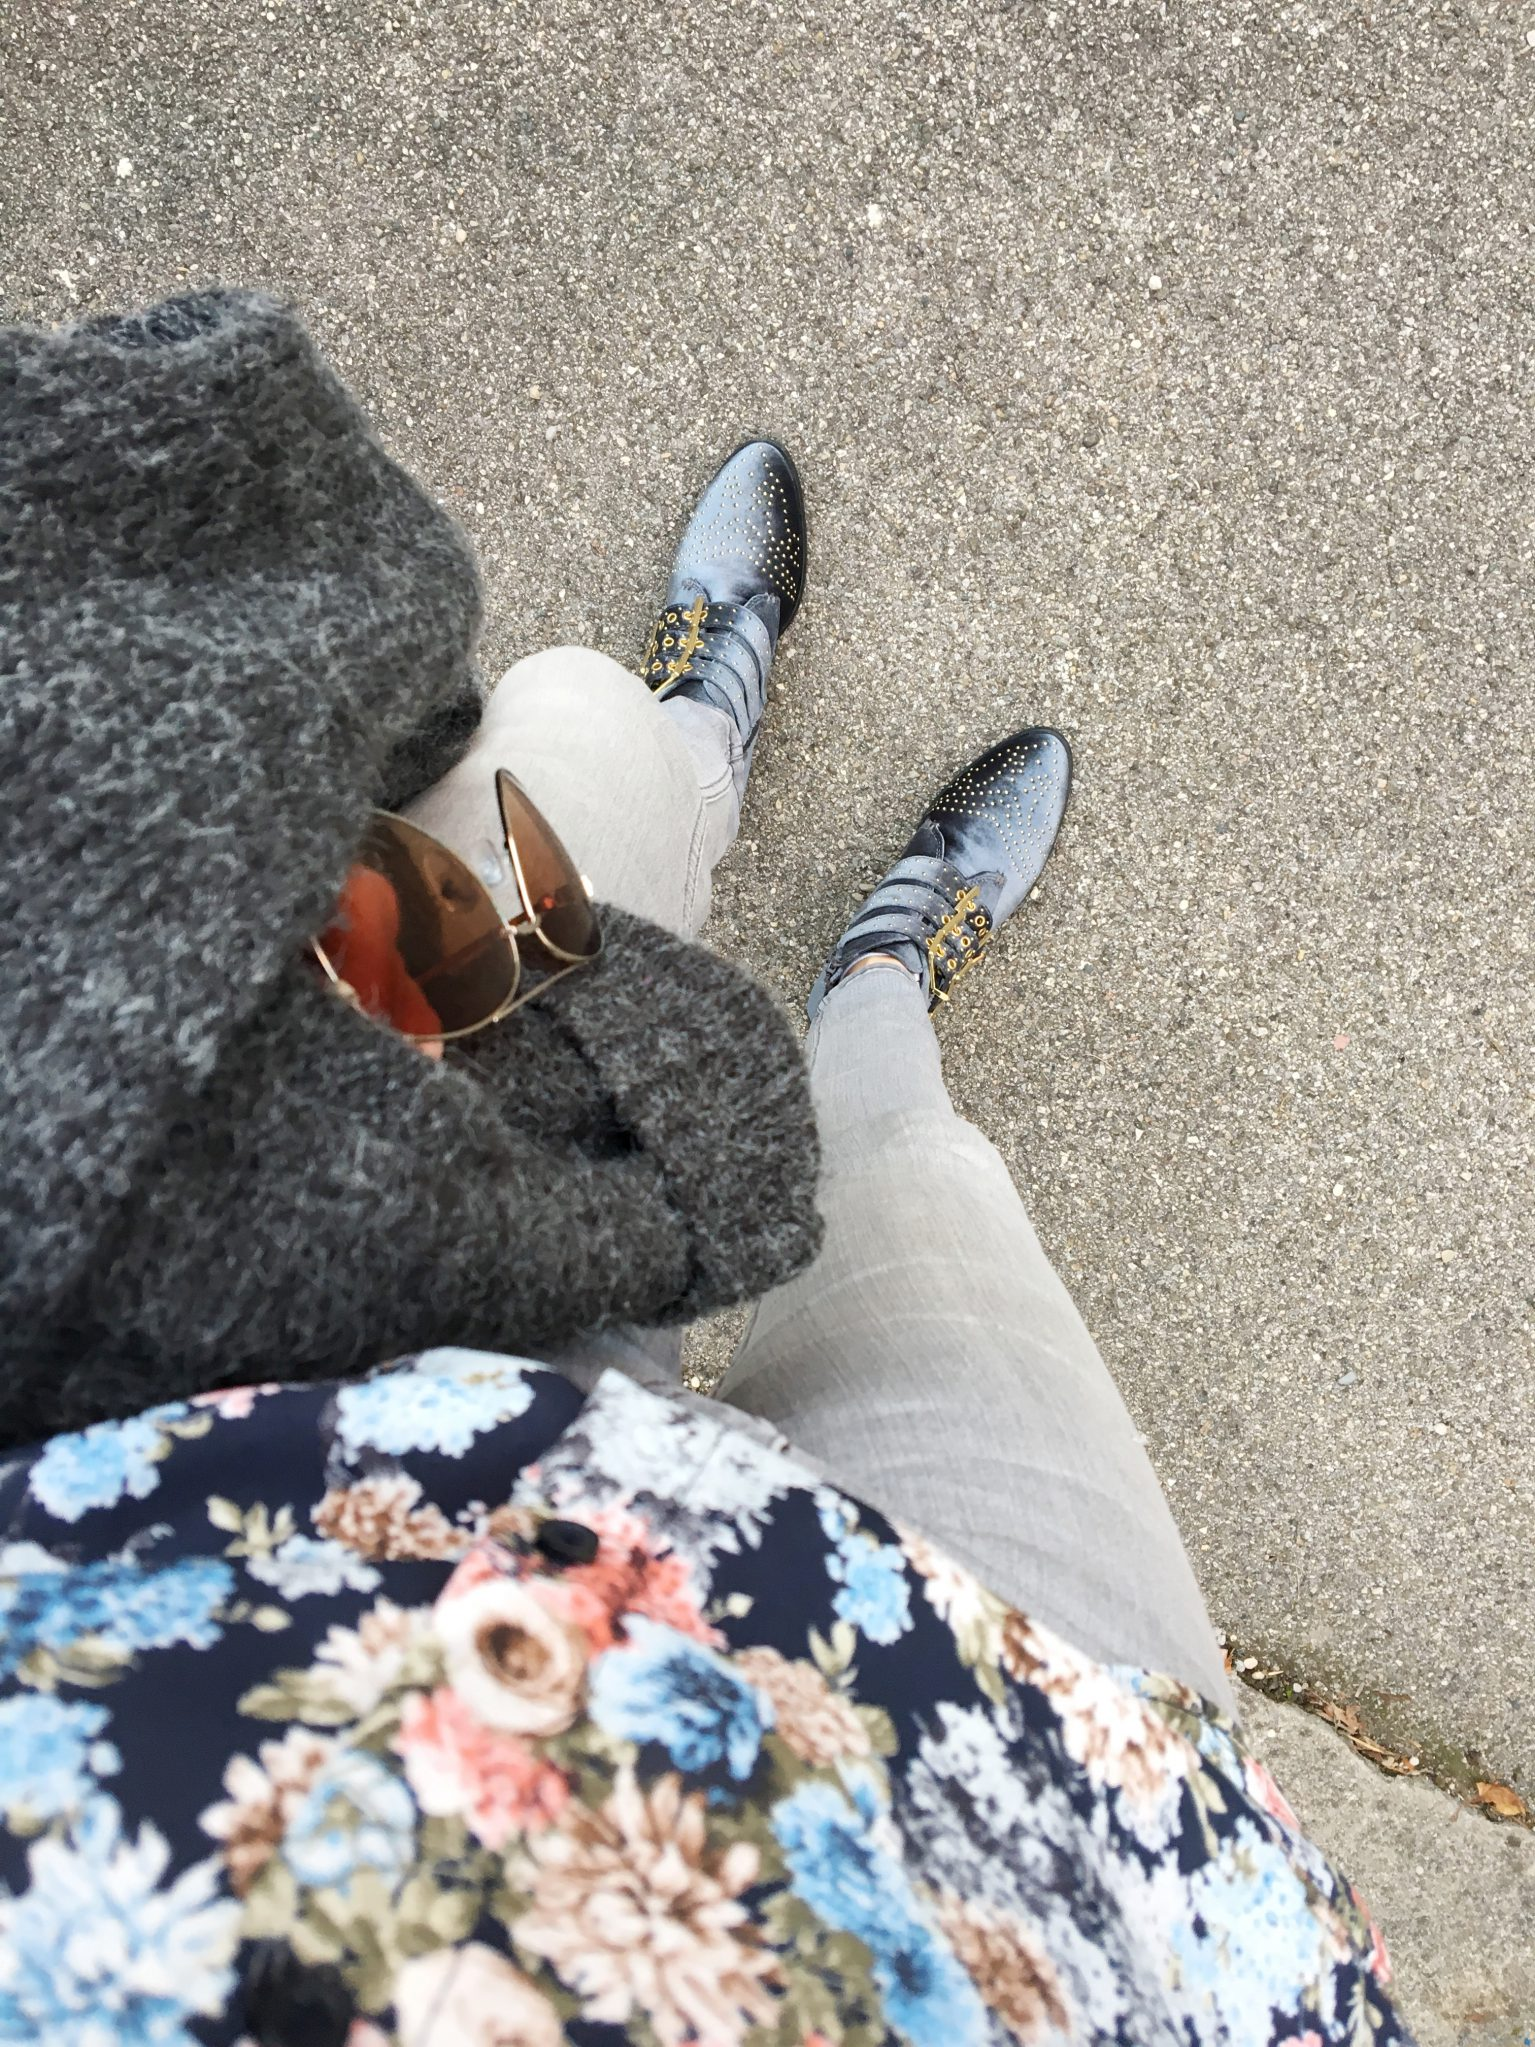 rockige Ankle Boots, Boots, Steifel, Bronx Schuhe, Mamainstyle, Modemama, Mama Mode Blog, Mamablog, Modeblog, Blümchenlook, rockige Boots, Streetstyle, Outfitinspiration, Outfitpost